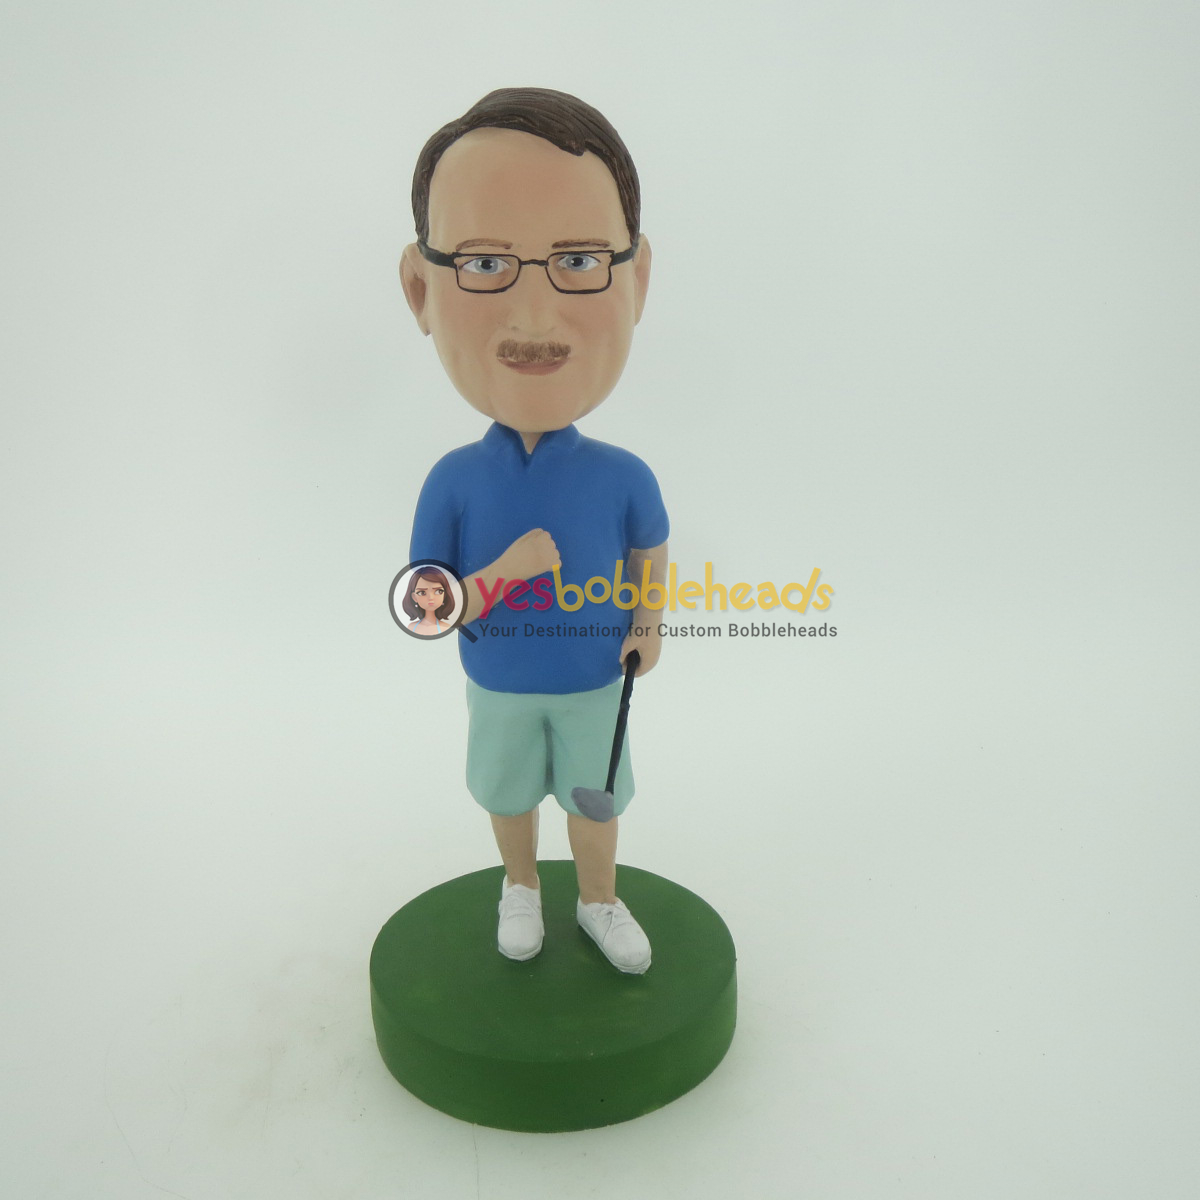 Picture of Custom Bobblehead Doll: Casual Man With Golf Club